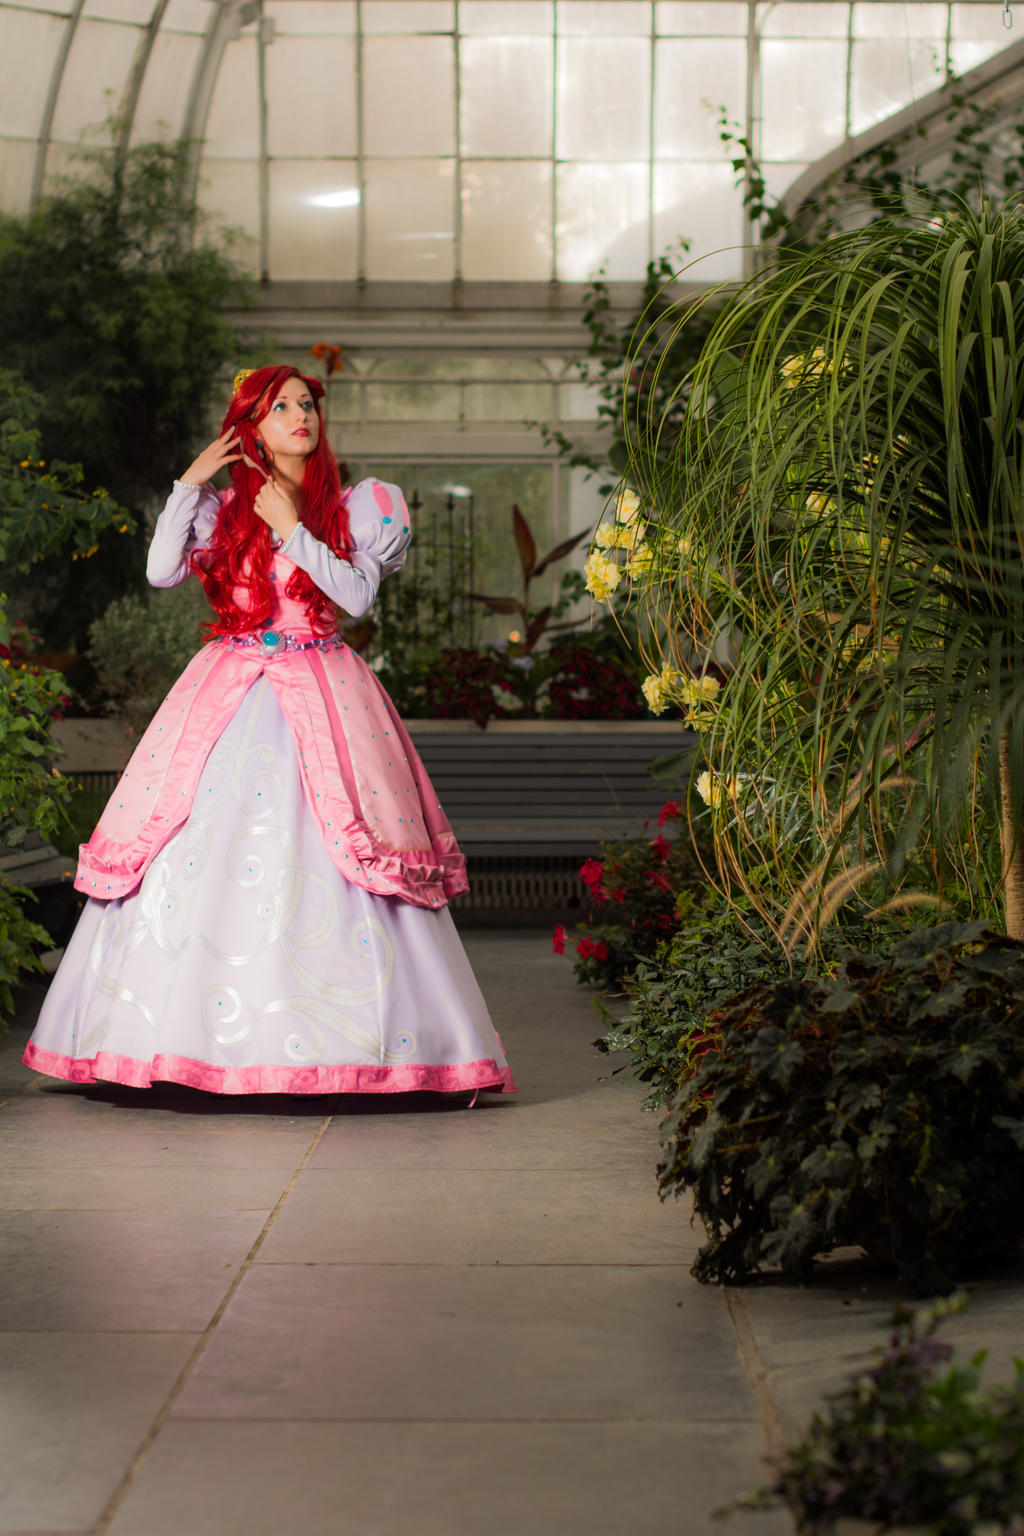 Ariel and her Dinglehopper -  A walk in the garden by LadyPinKuCosplay